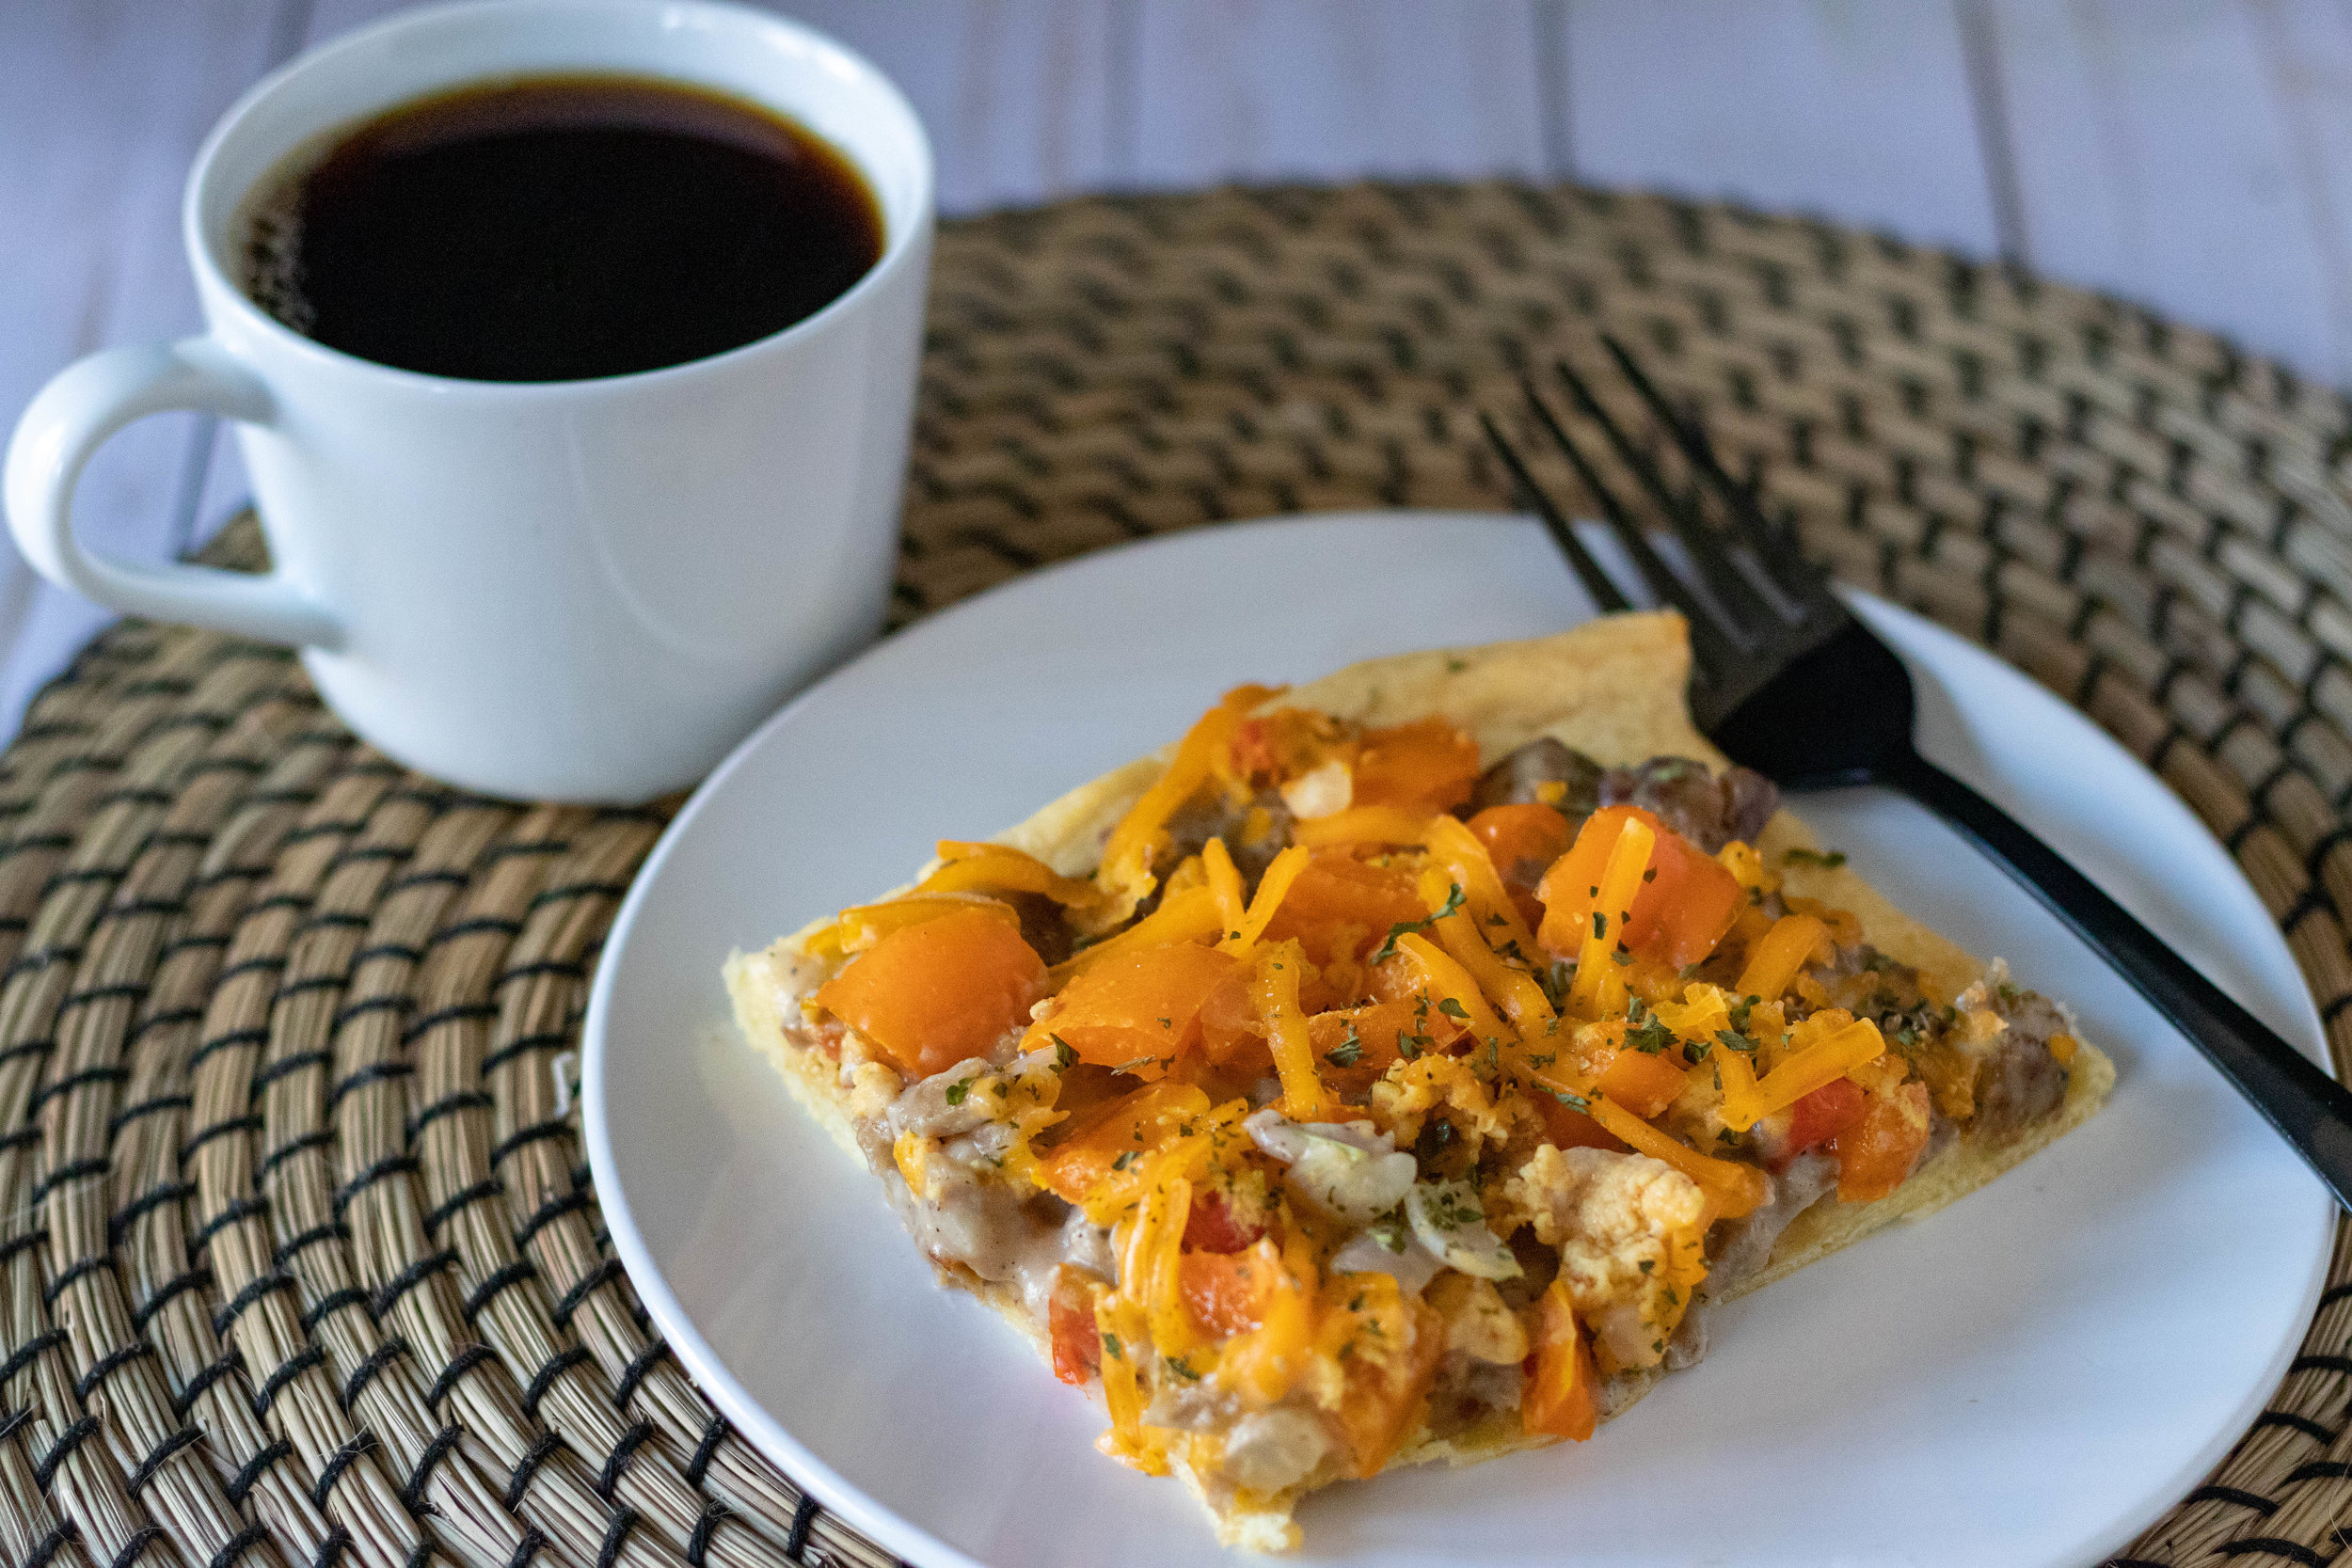 Vegan breakfast pizza served with a cup of coffee